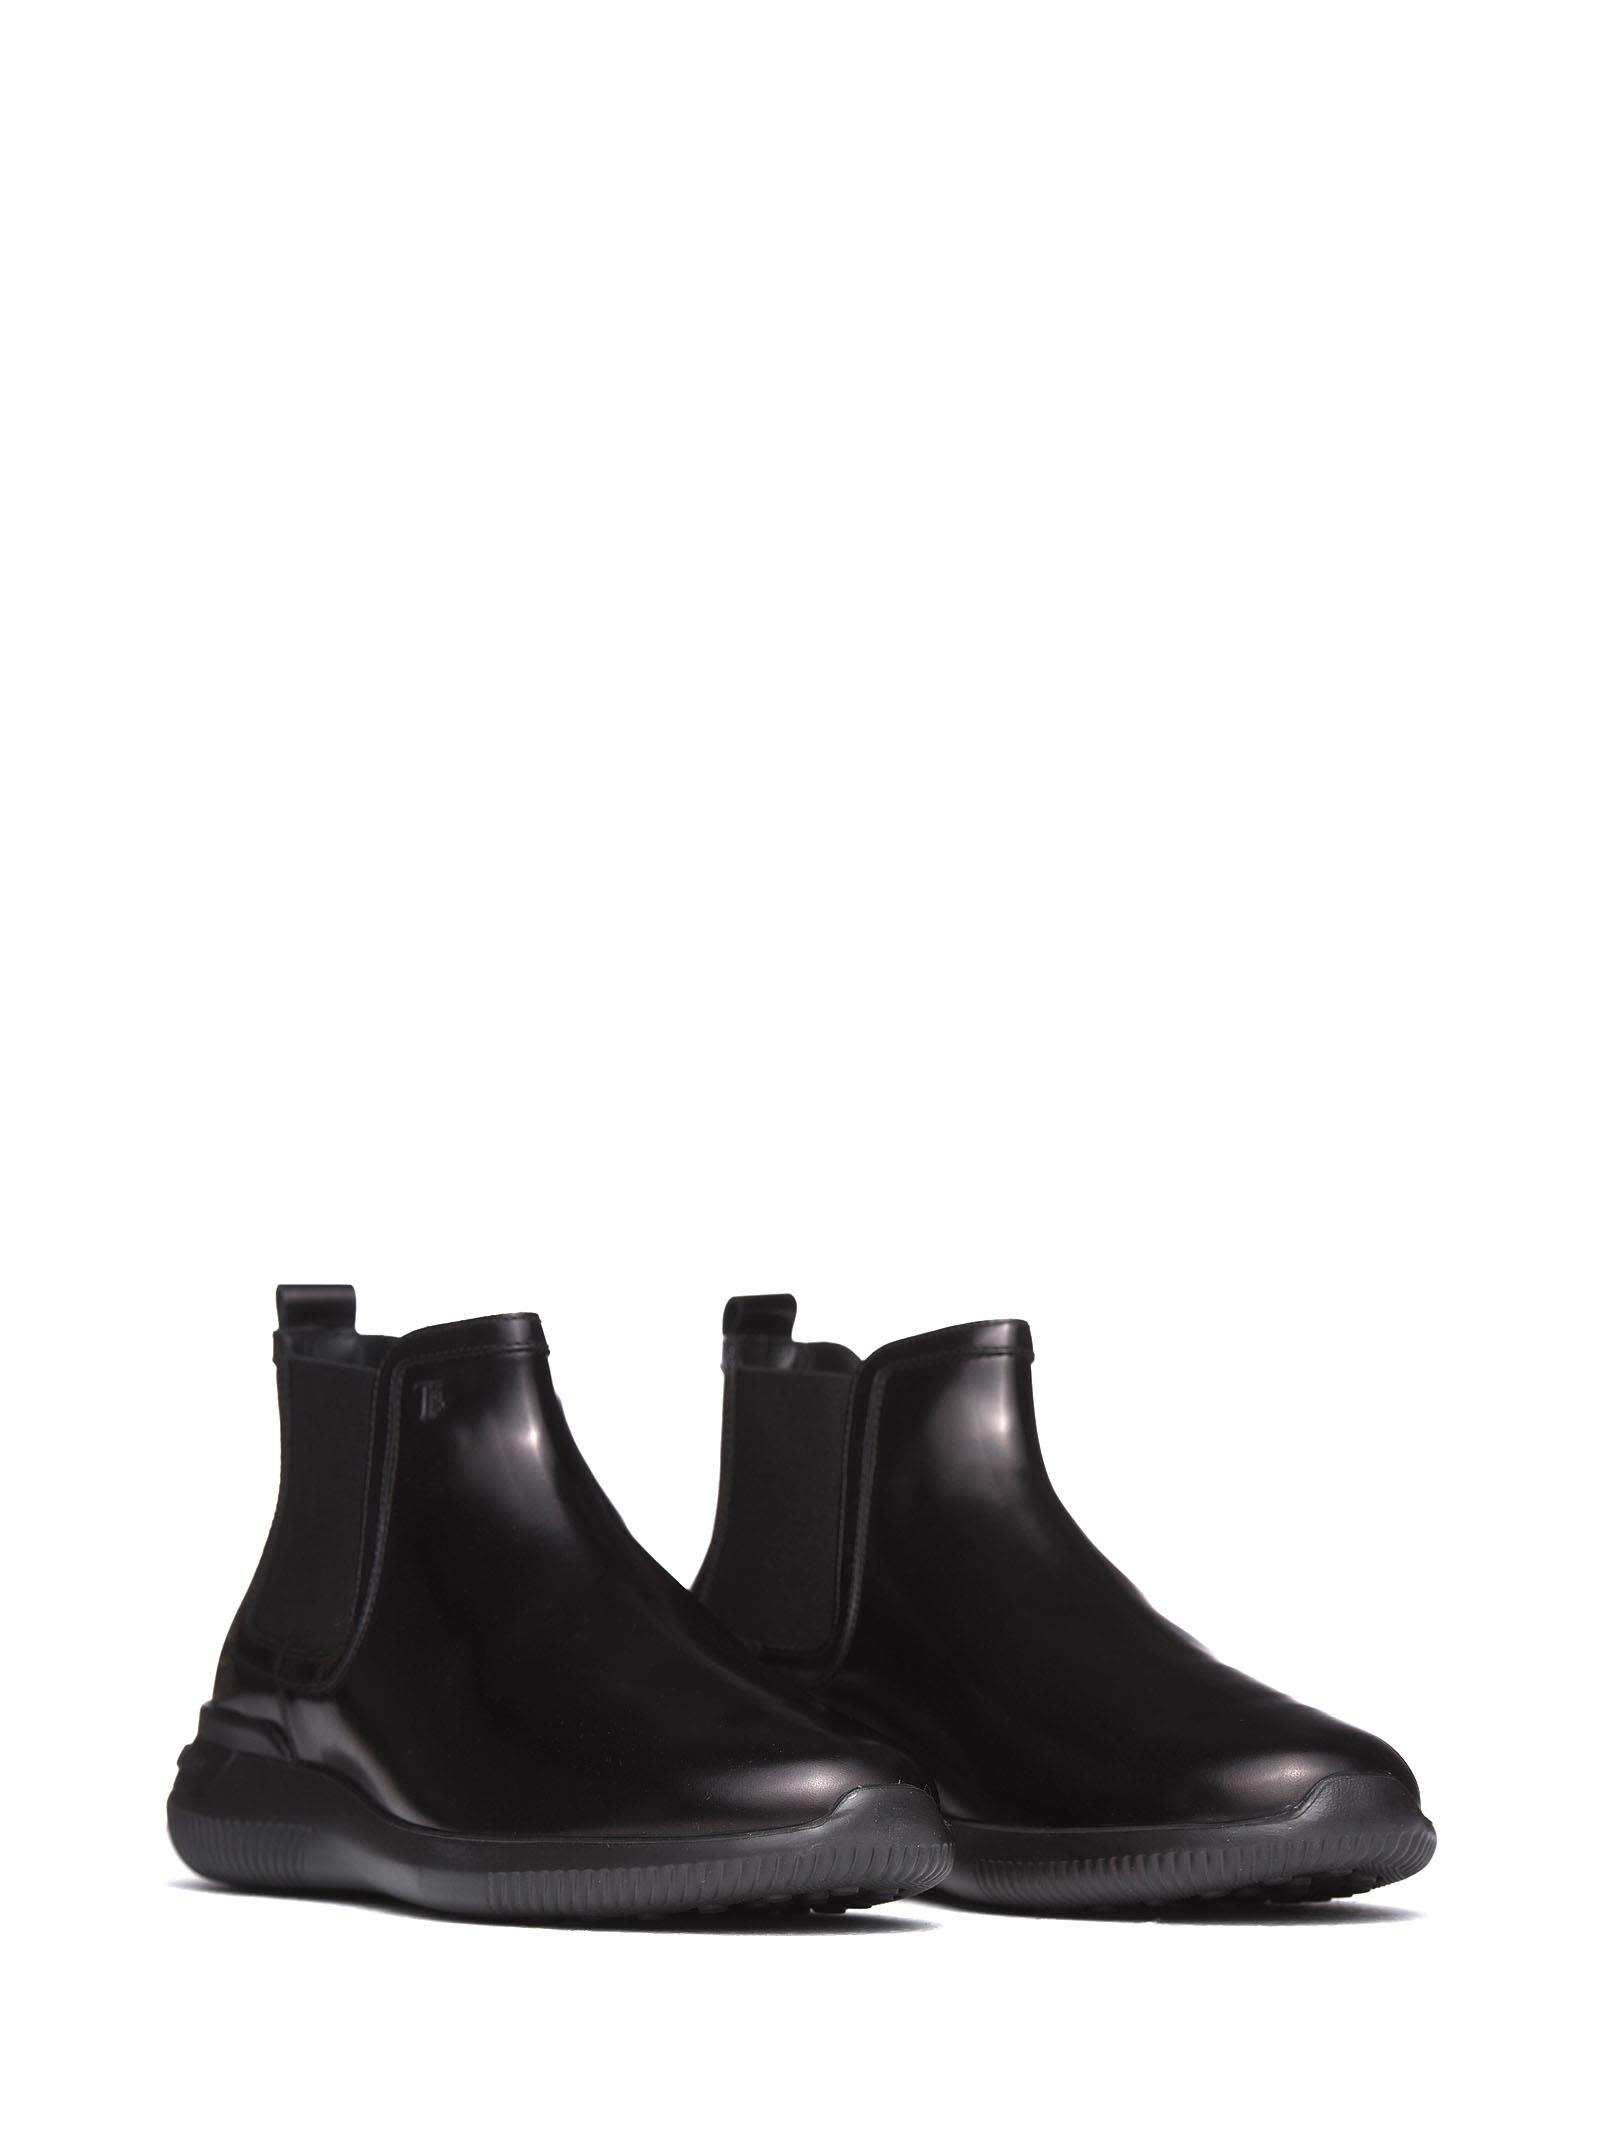 cec1beb603 Tod's Tod's Ankle Boots In Black Smooth Leather B - NERO - 10713953 ...